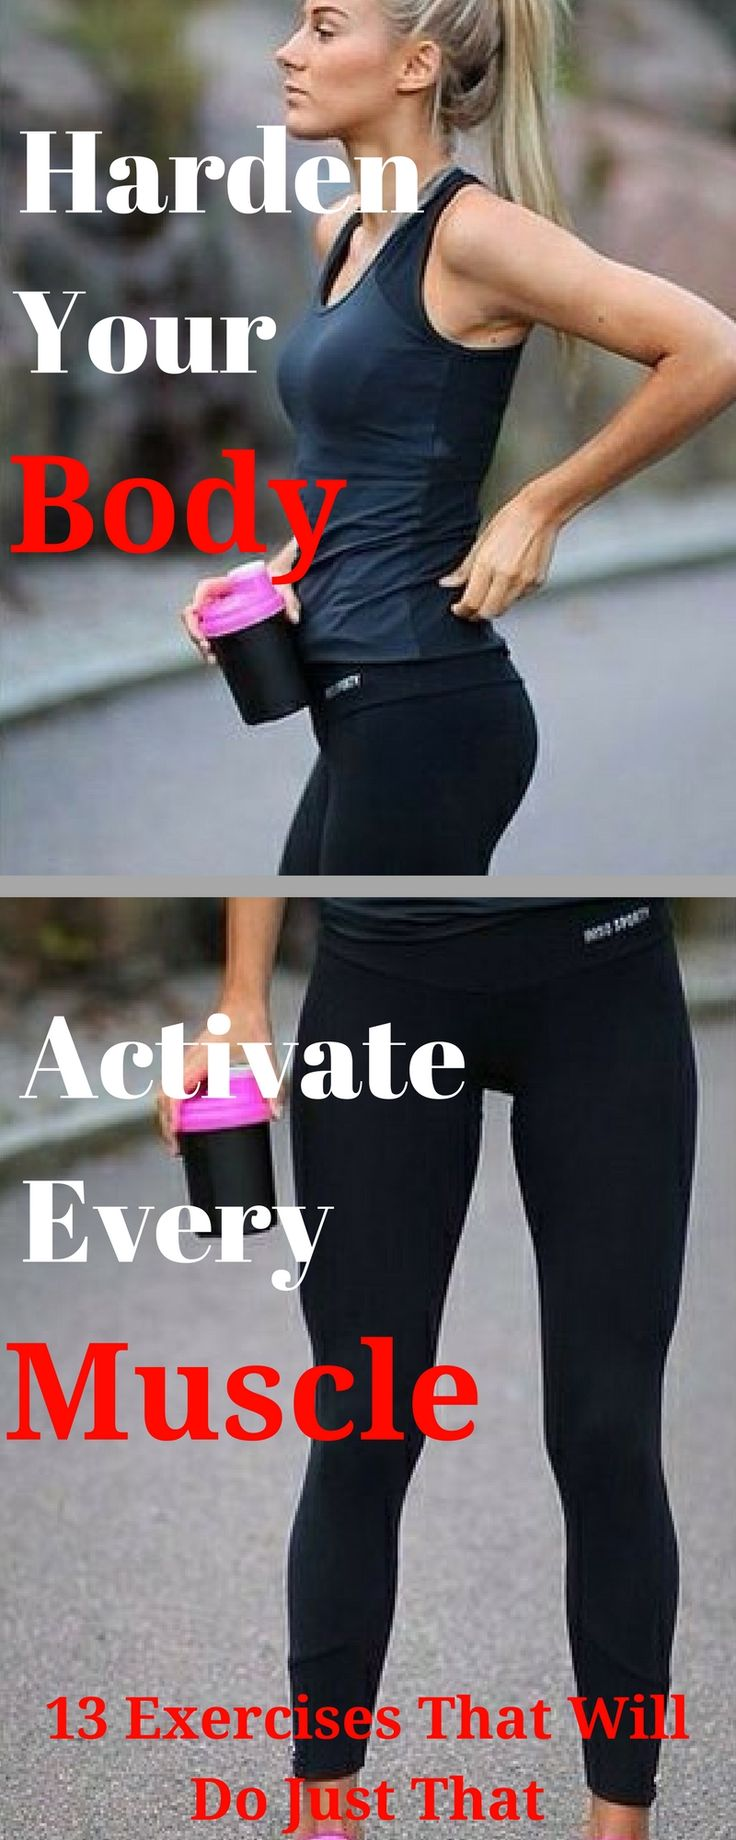 get in shape easy and fast with these exercises